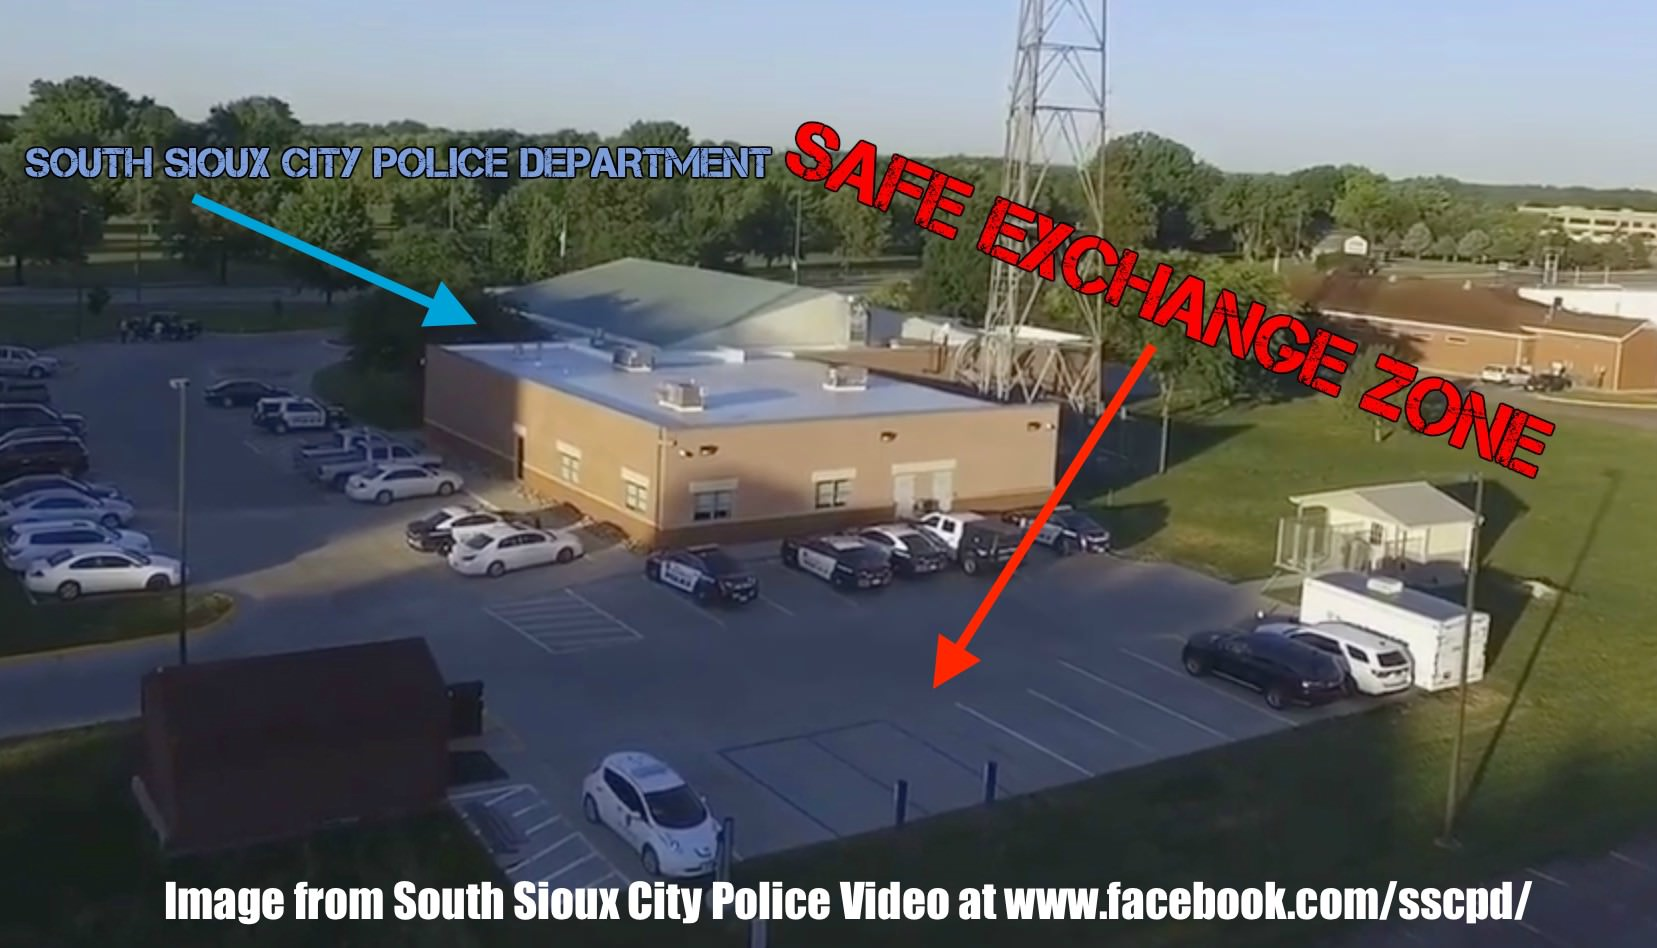 Safe Exchange Zone setup at South Sioux City Police Department